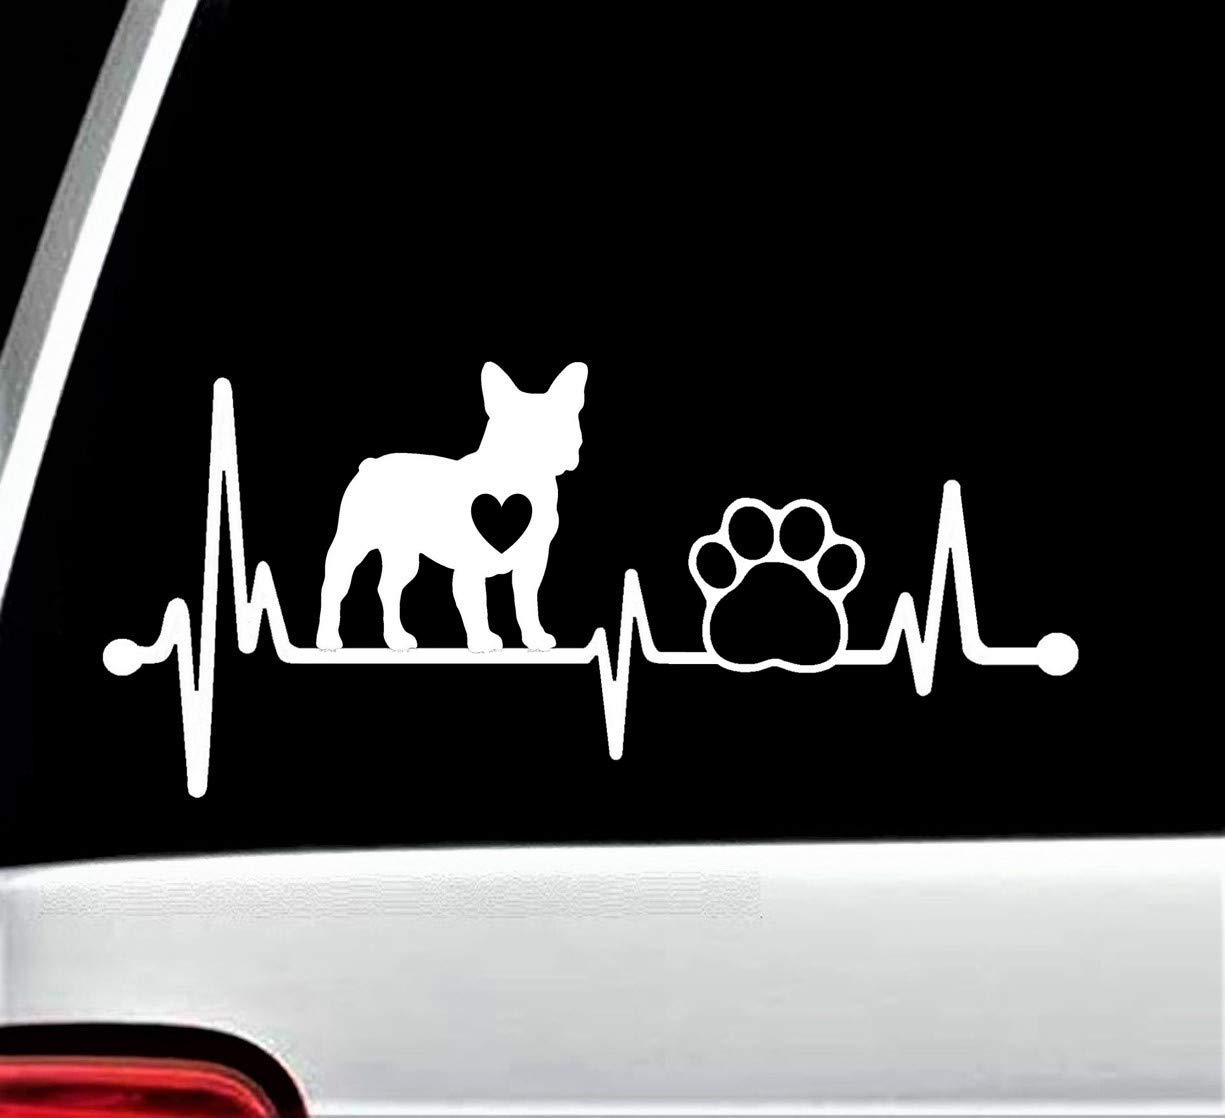 Max 79% OFF Frenchie French Bulldog Heartbeat Mail order Lifeline Dog Paw Sticker Decal